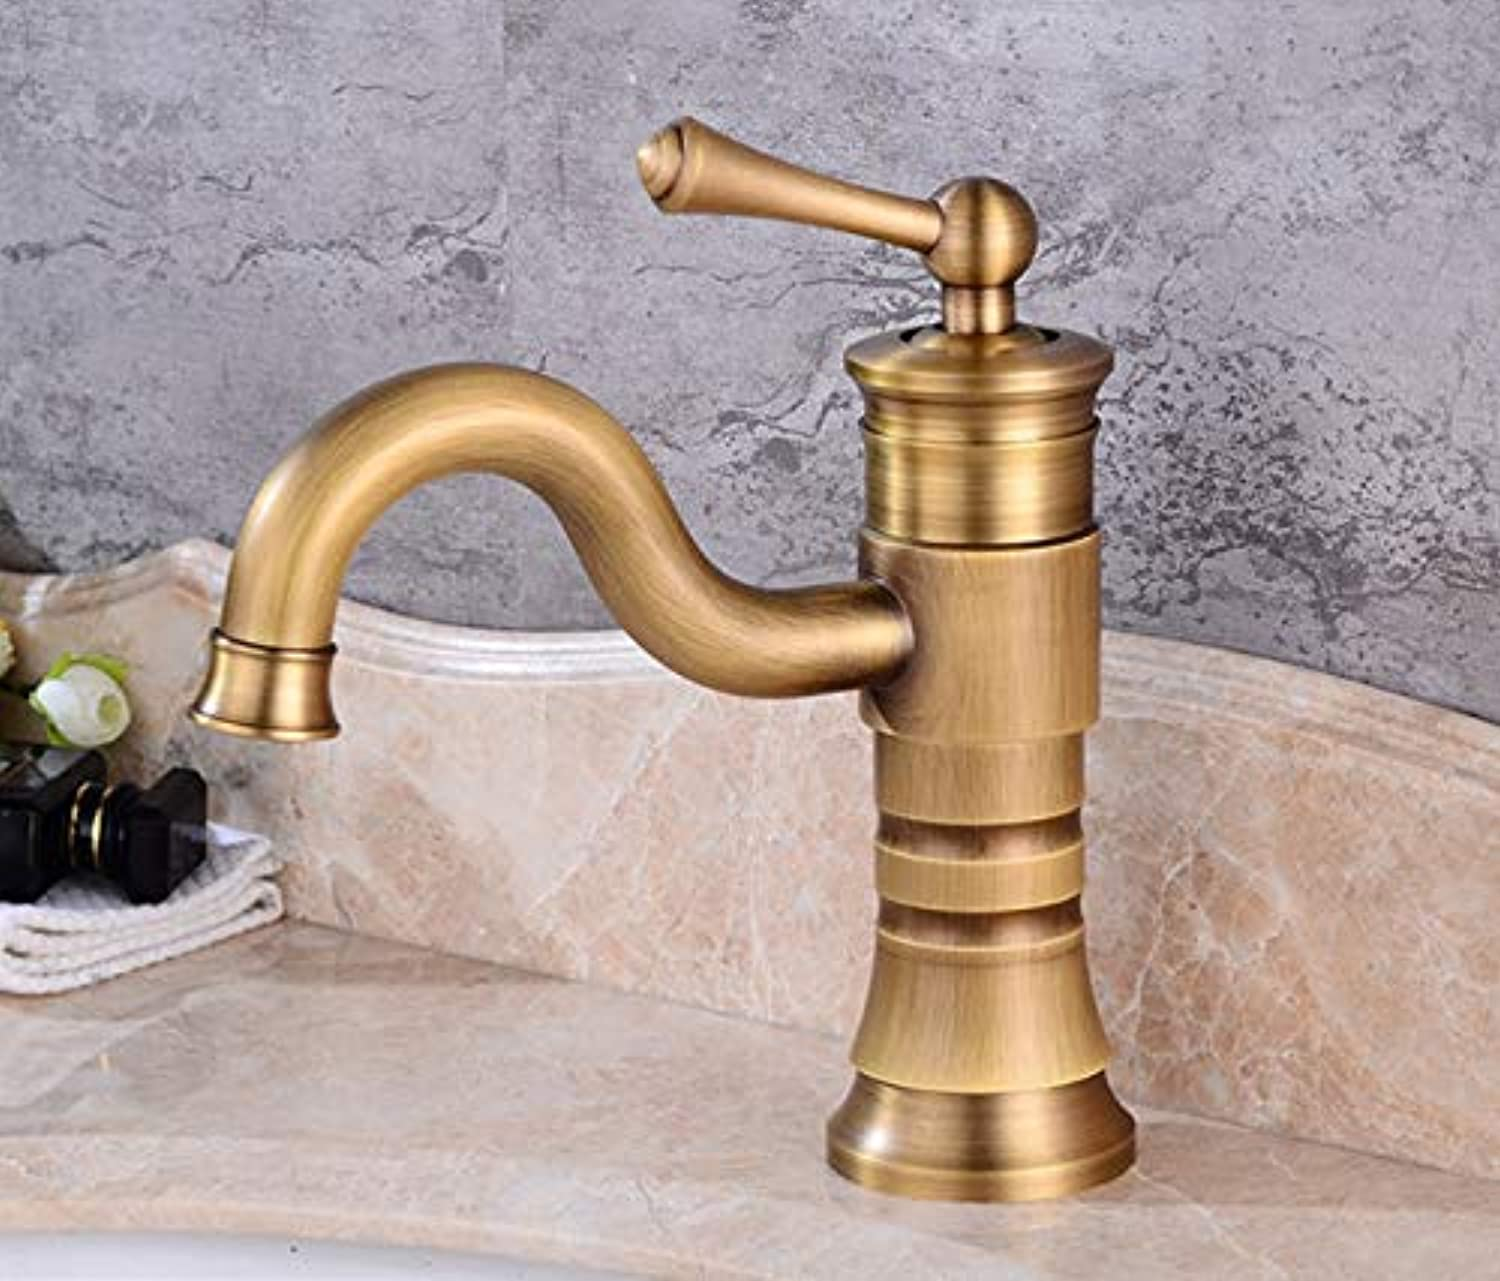 Faucets Antique Brass Faucet Bathroom With Single Handle Vintage Deck Mount Hot Cold Bath Mixer Water Tap F